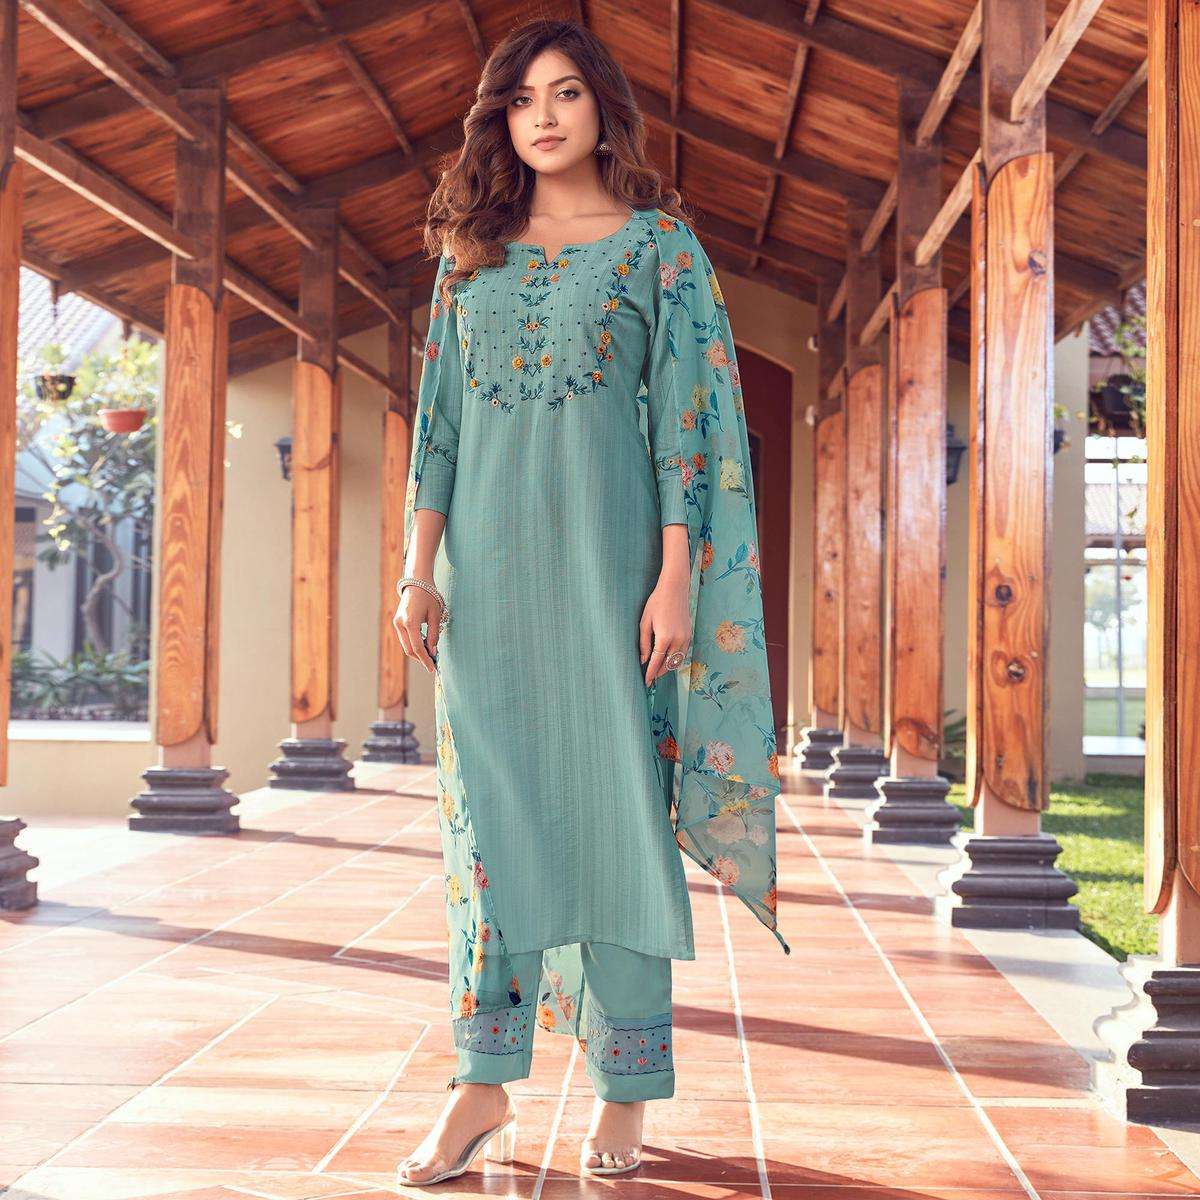 Alluring Pastel Blue Colored Partywear Floral Embroidered Pure Viscose Kurti - Pant Set With Dupatta